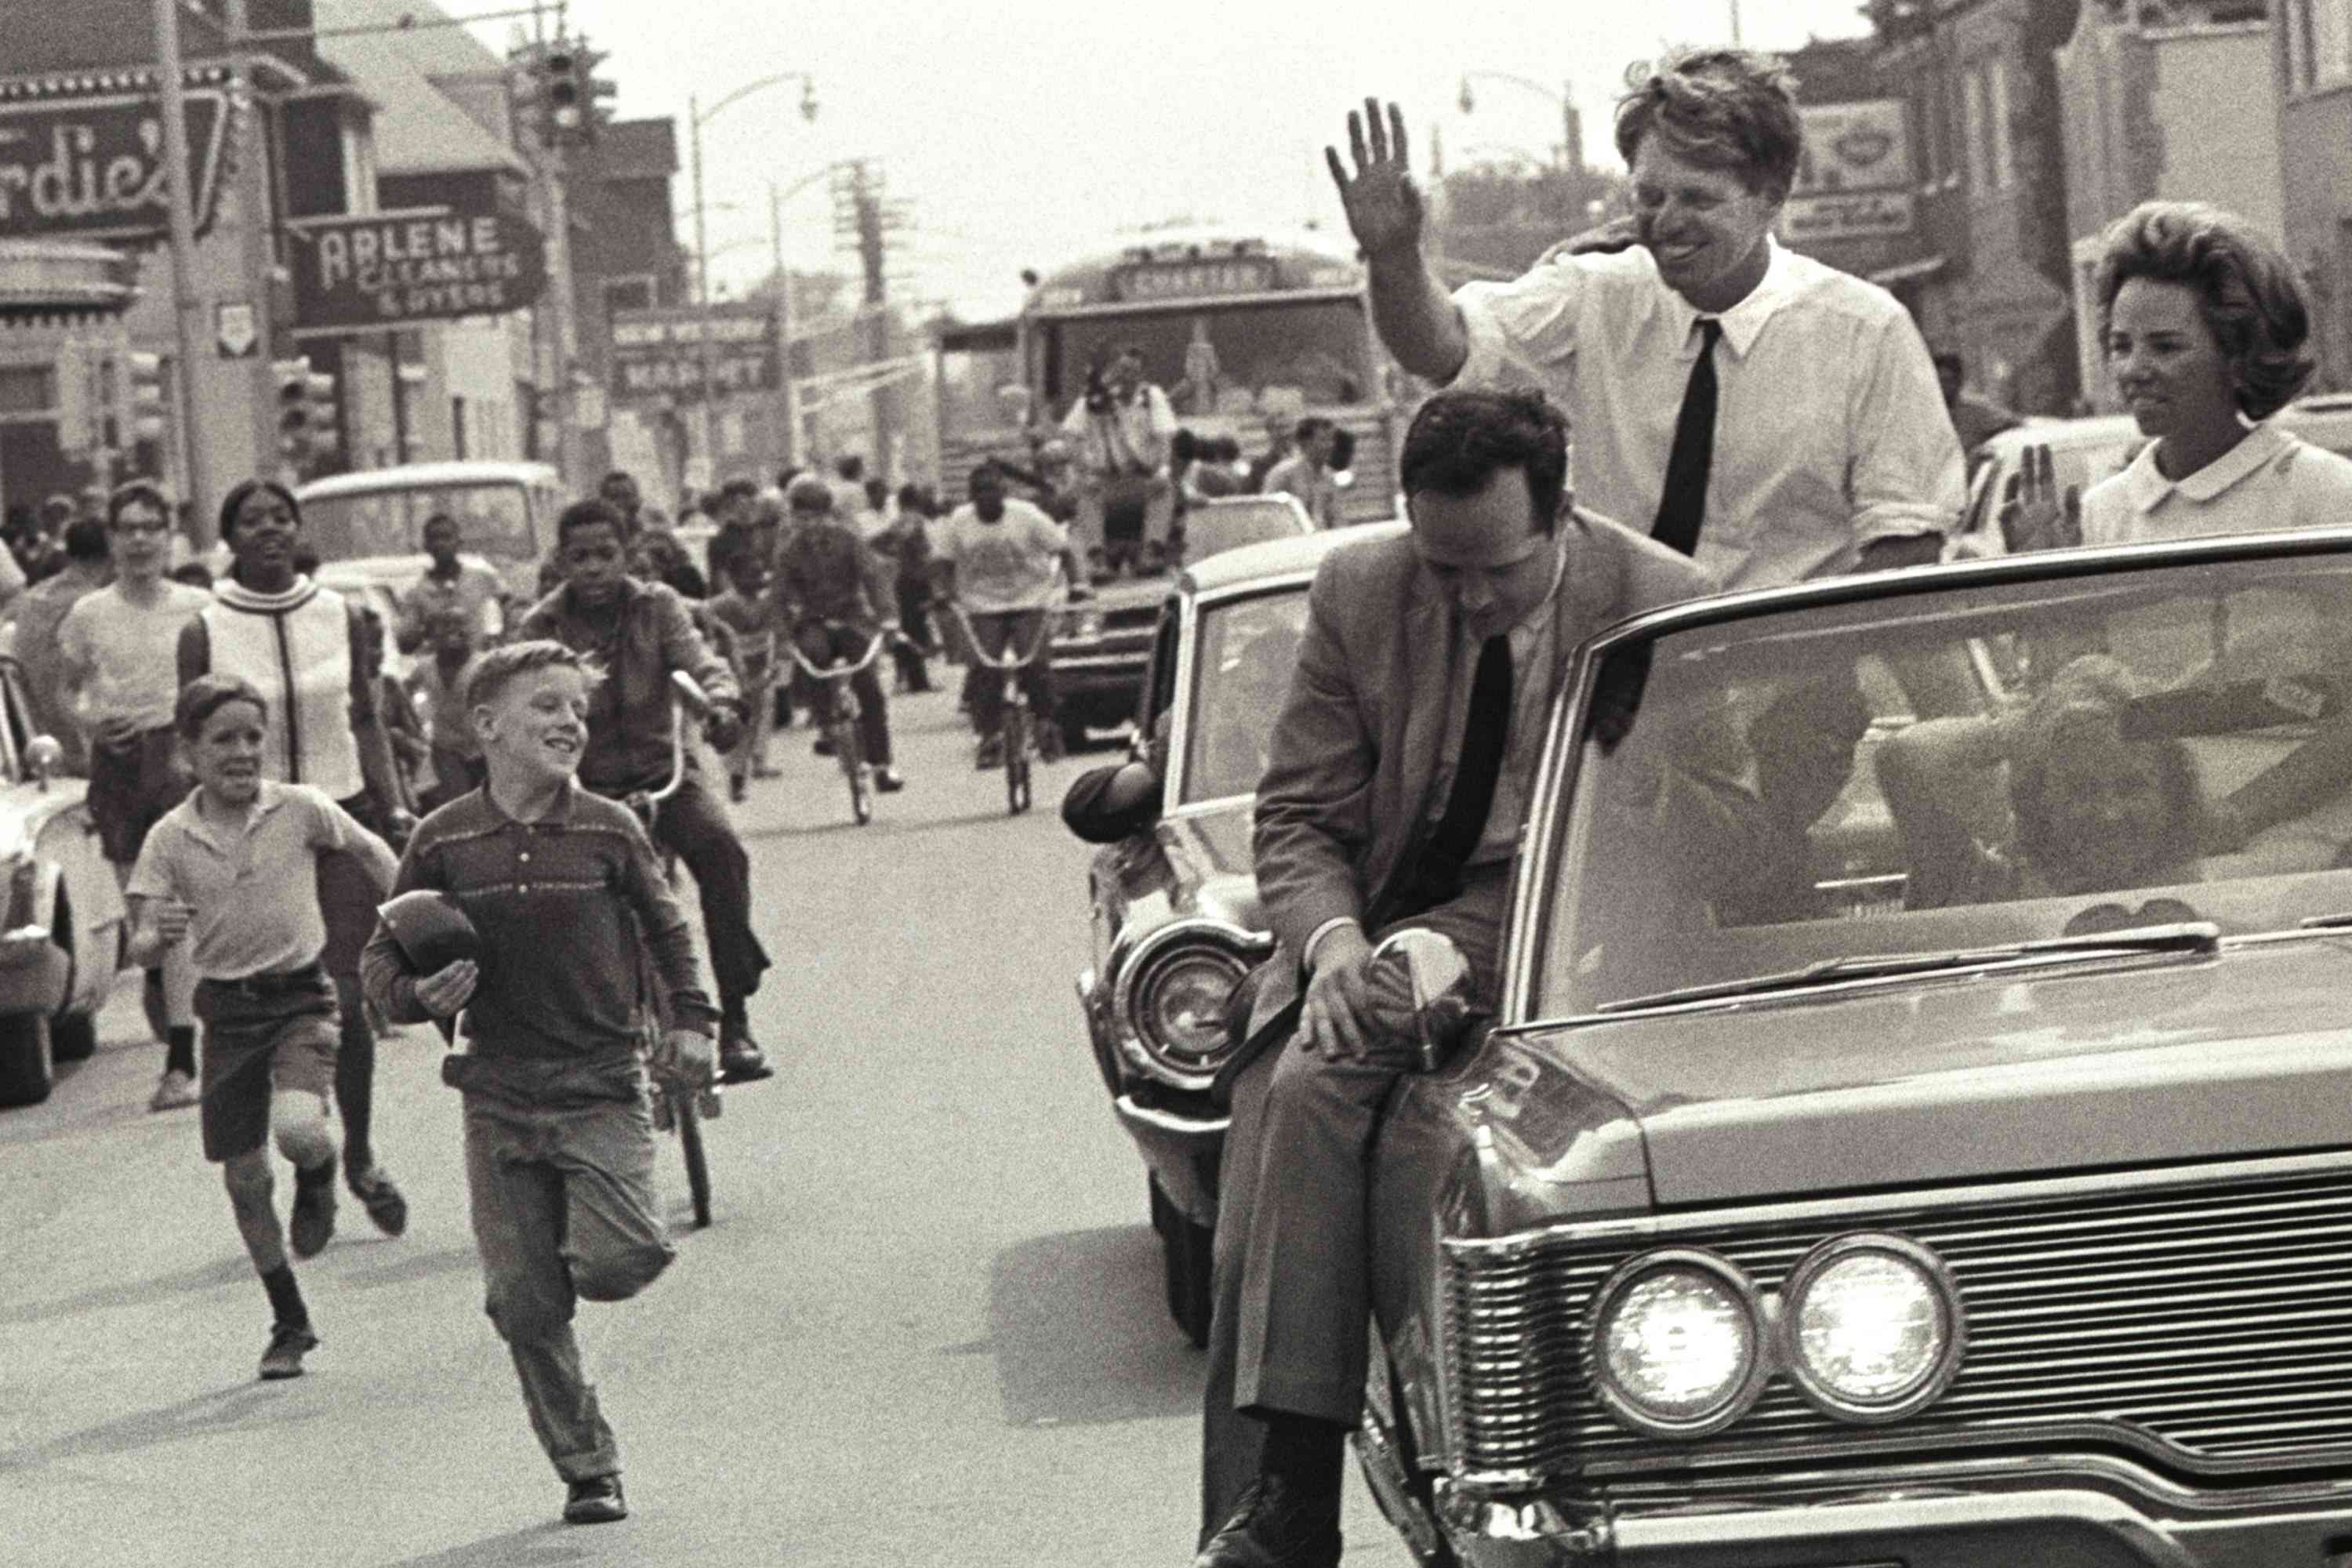 photo of Robert Kennedy campaigning in Detroit